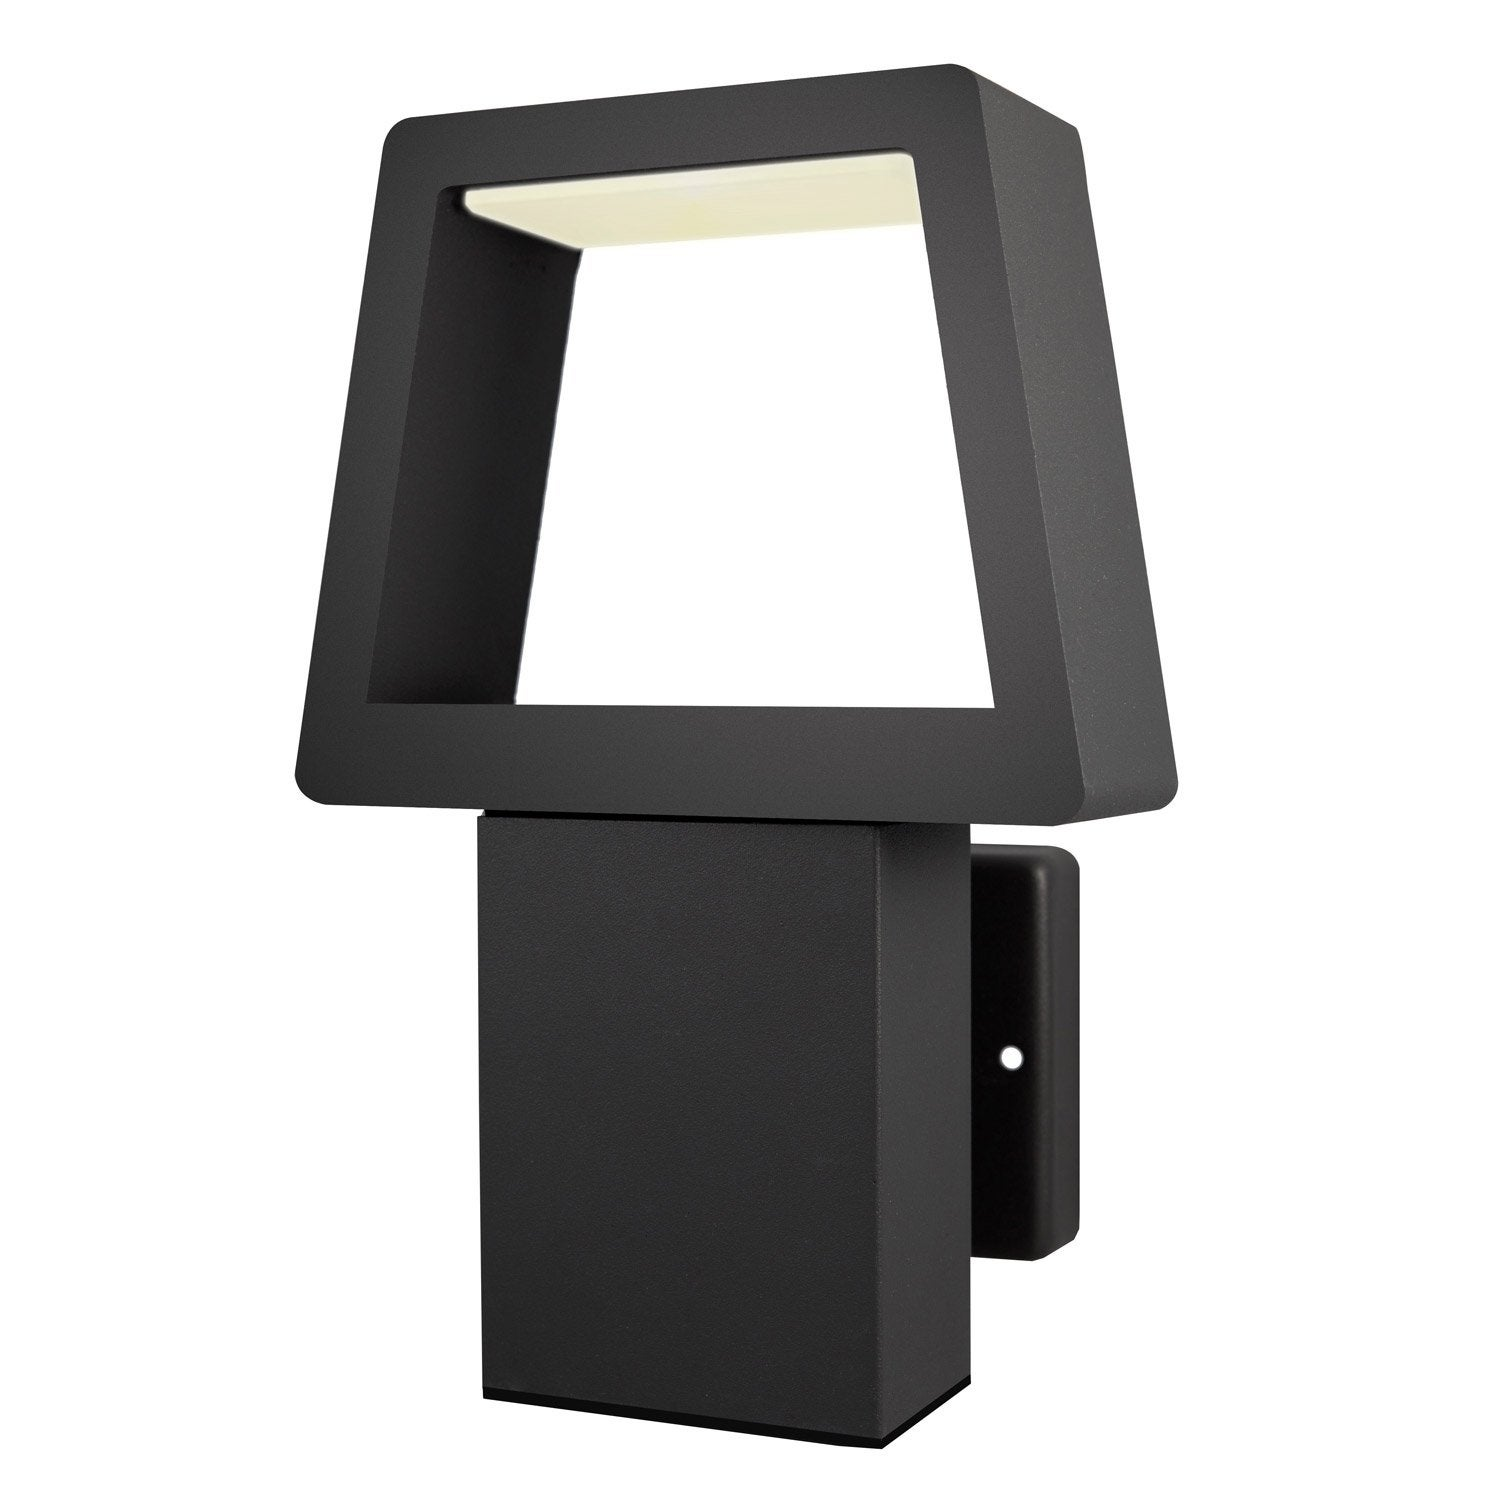 lumihome led top voir duautres produits potelet extrieur. Black Bedroom Furniture Sets. Home Design Ideas